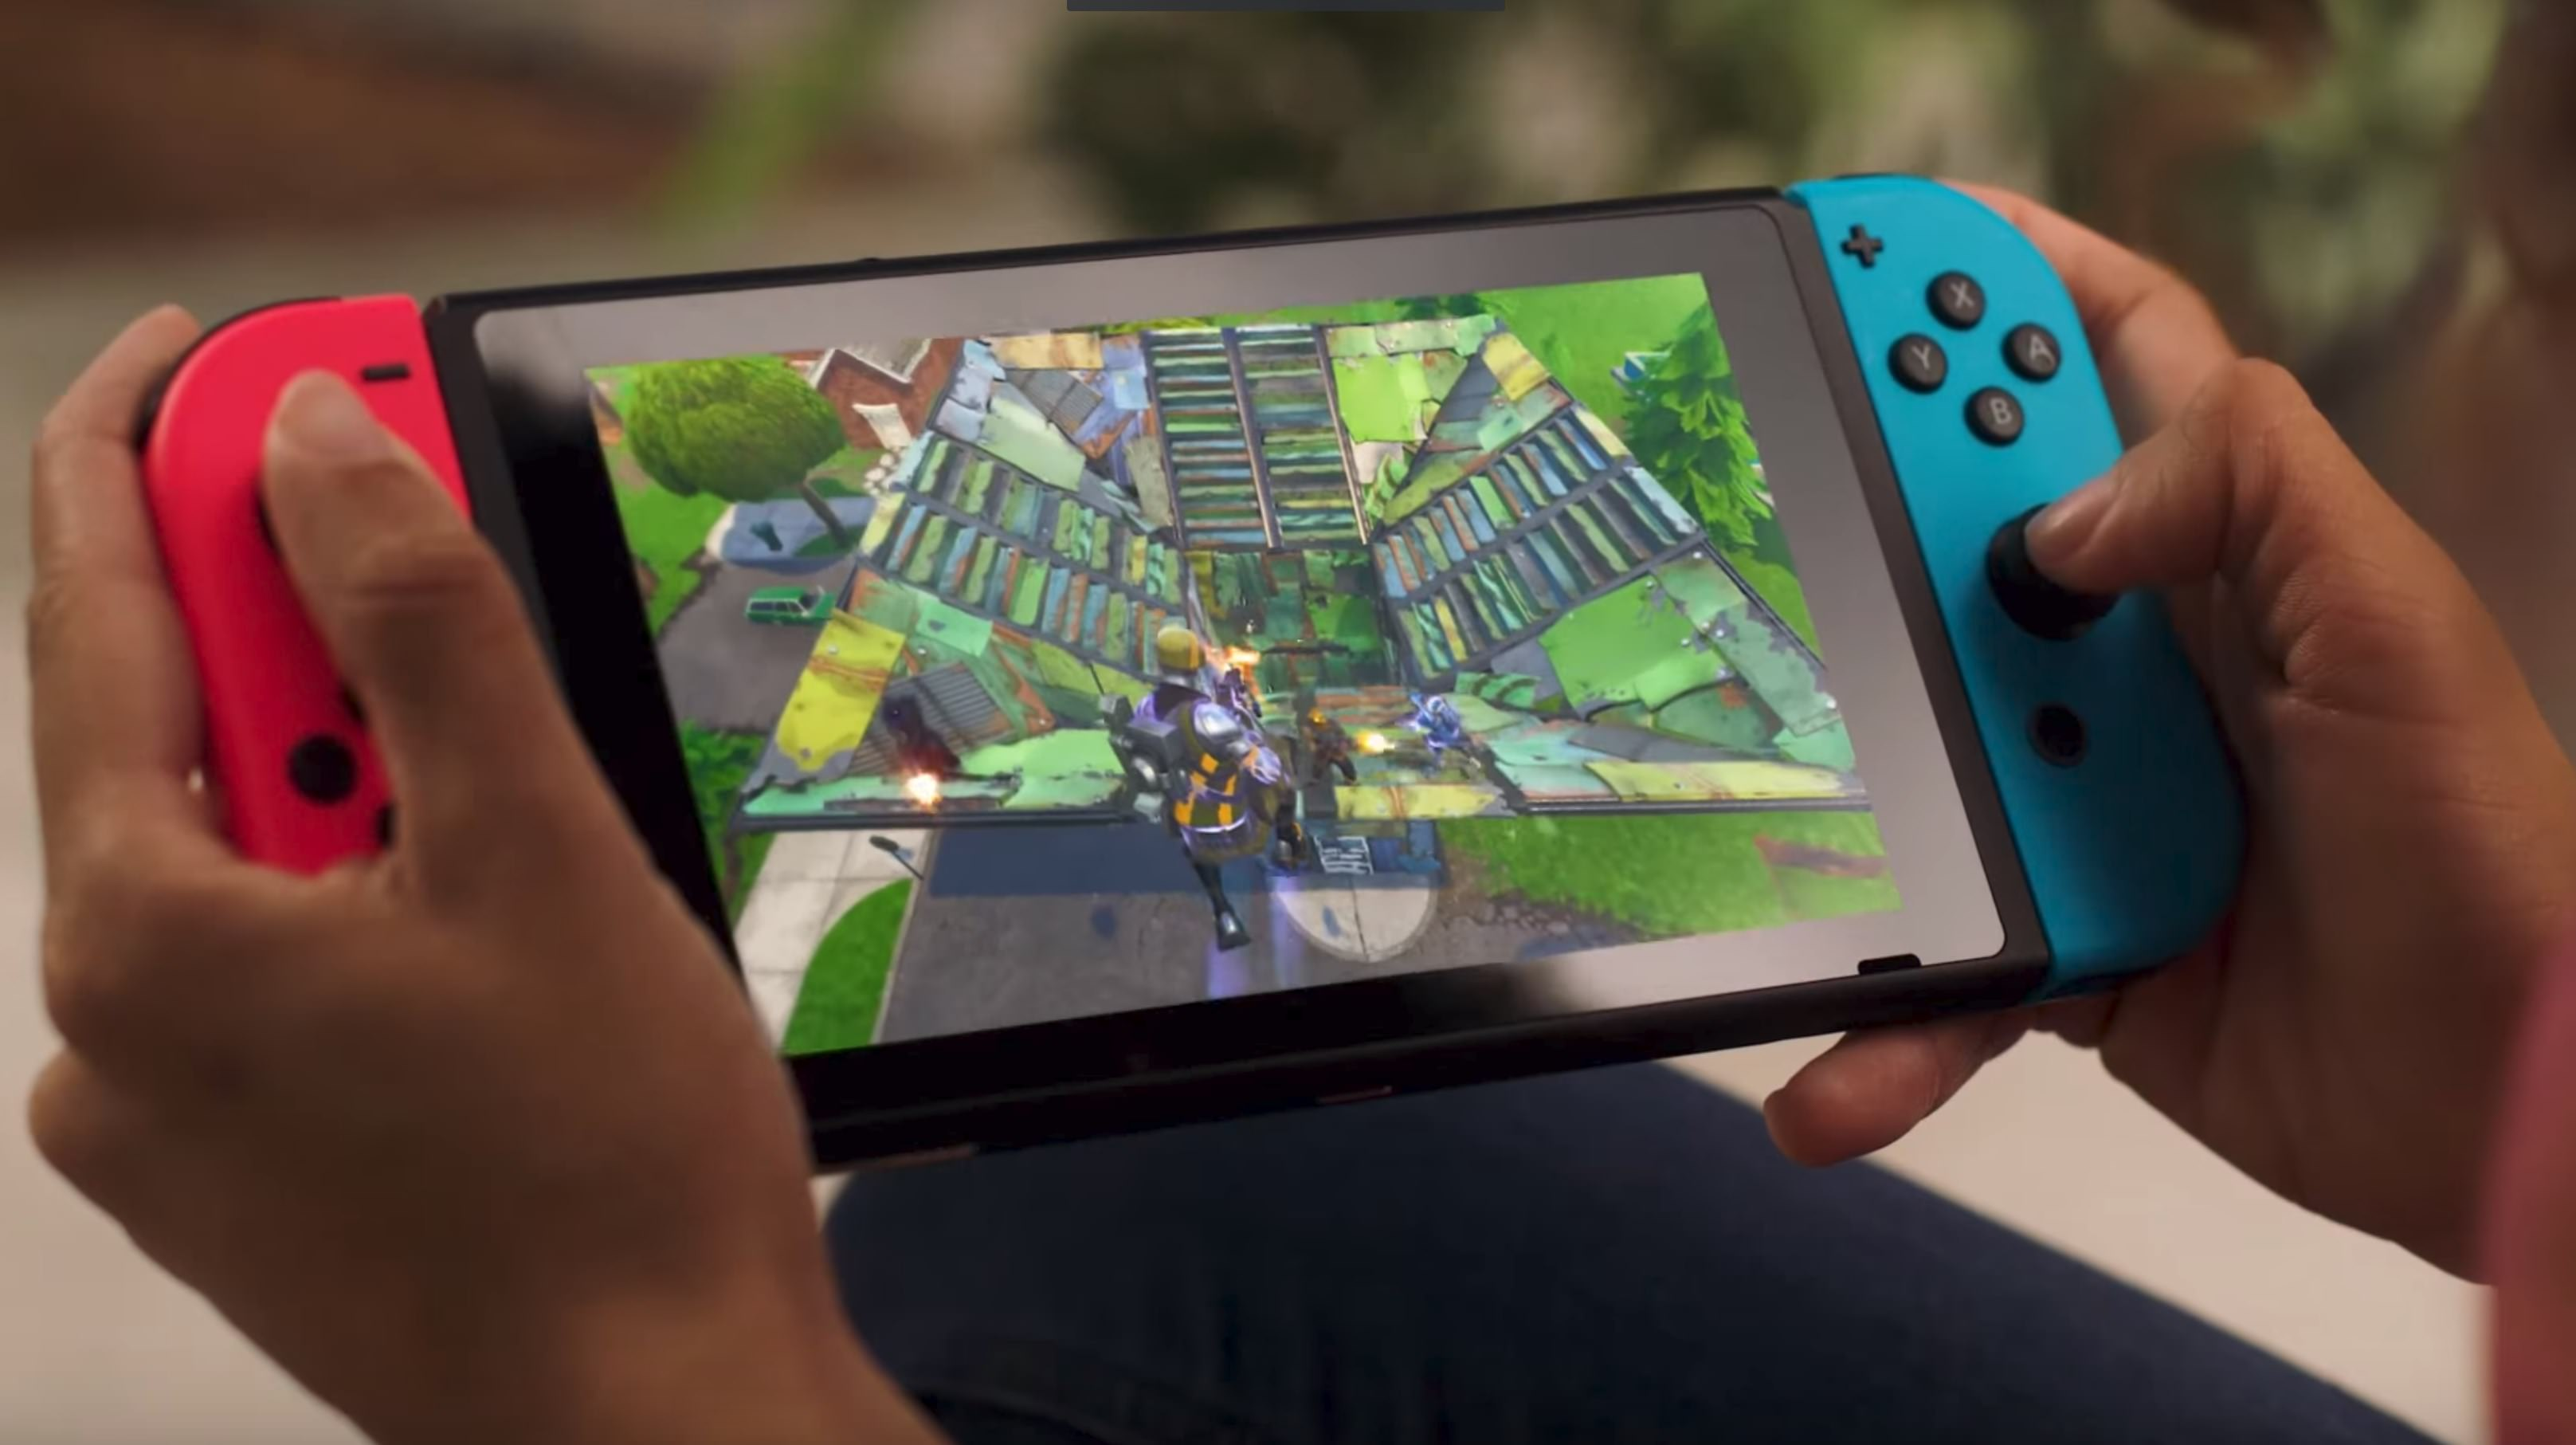 Sony is blocking Fortnite cross-play between PS4 and Nintendo Switch players